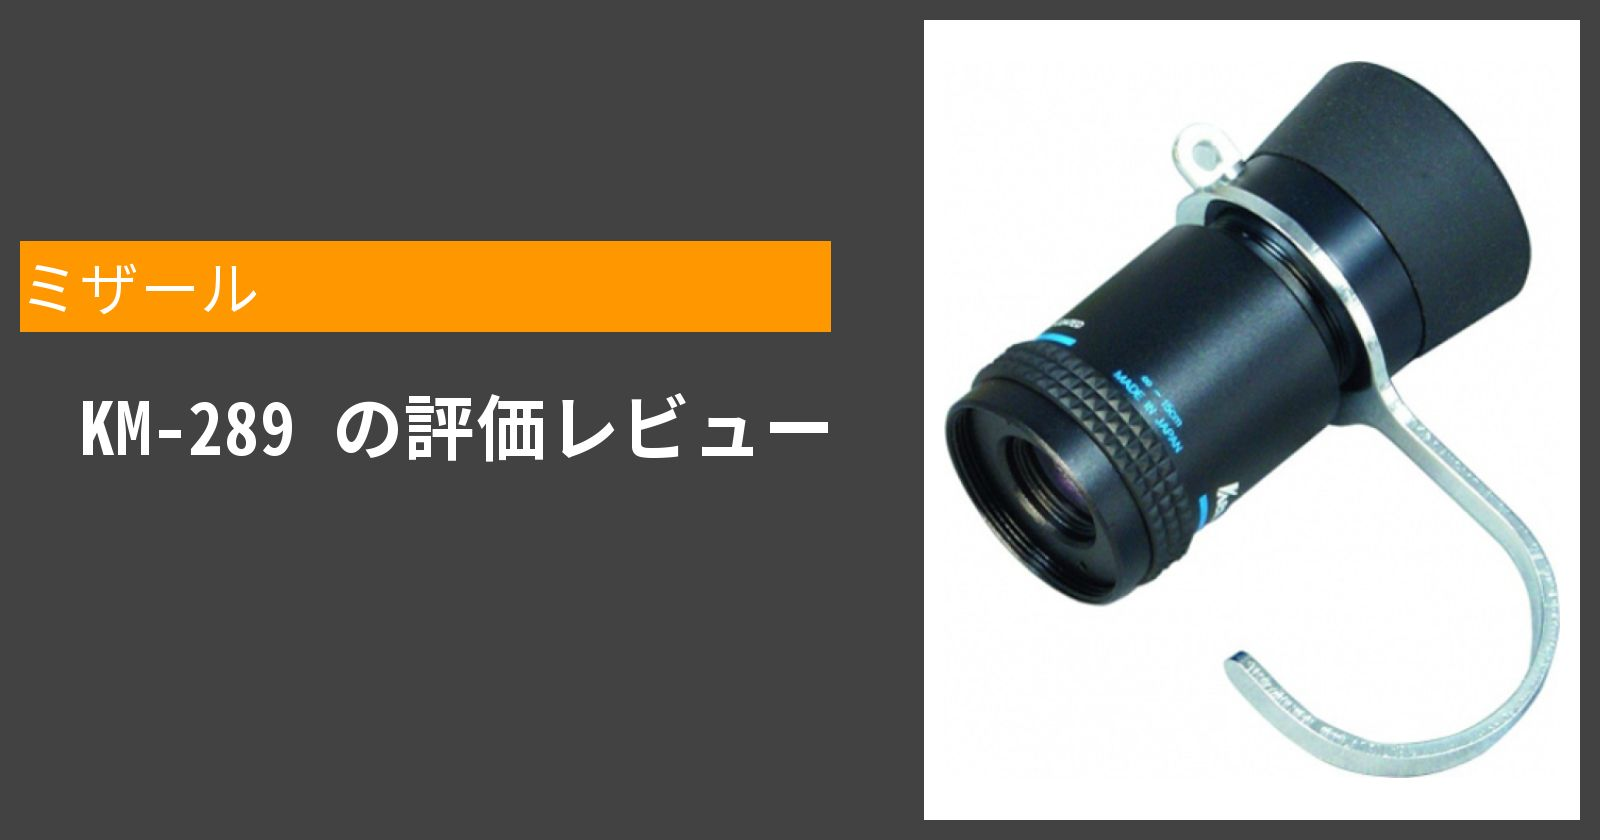 KM-289を徹底評価